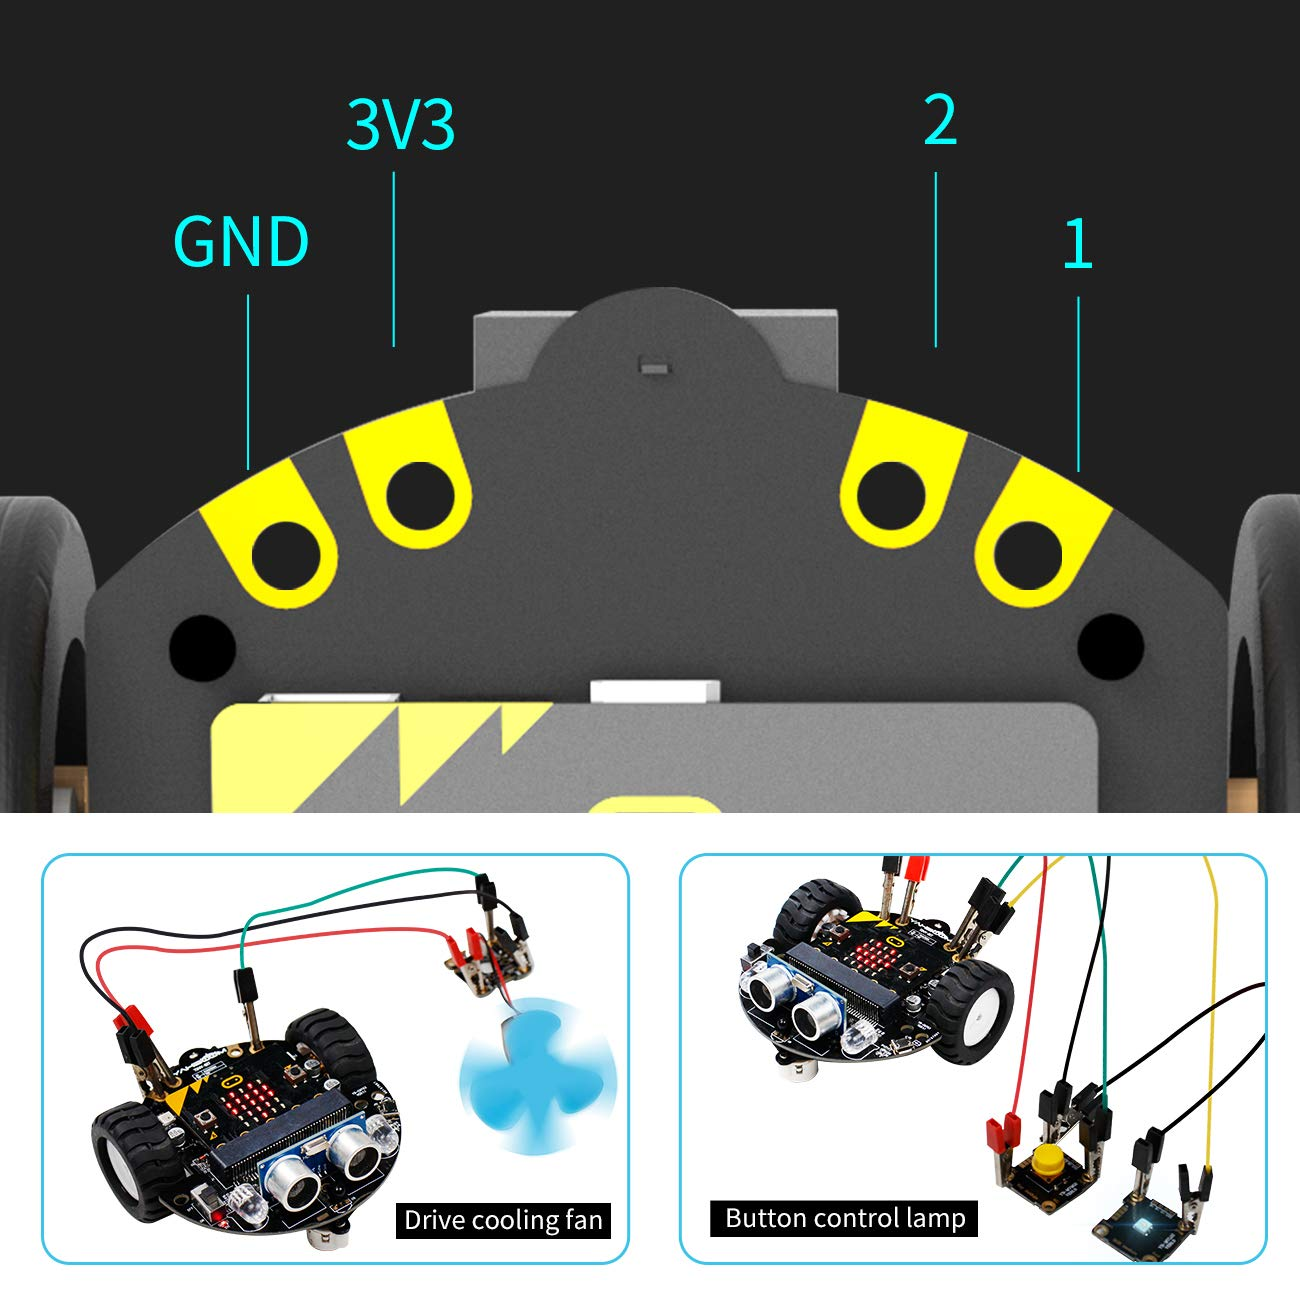 Yahboom Robot Kit for Micro:bit to Learn Programming STEM Education Toy Car for Kids 8+ (Without Micro:bit) by Yahboom (Image #3)